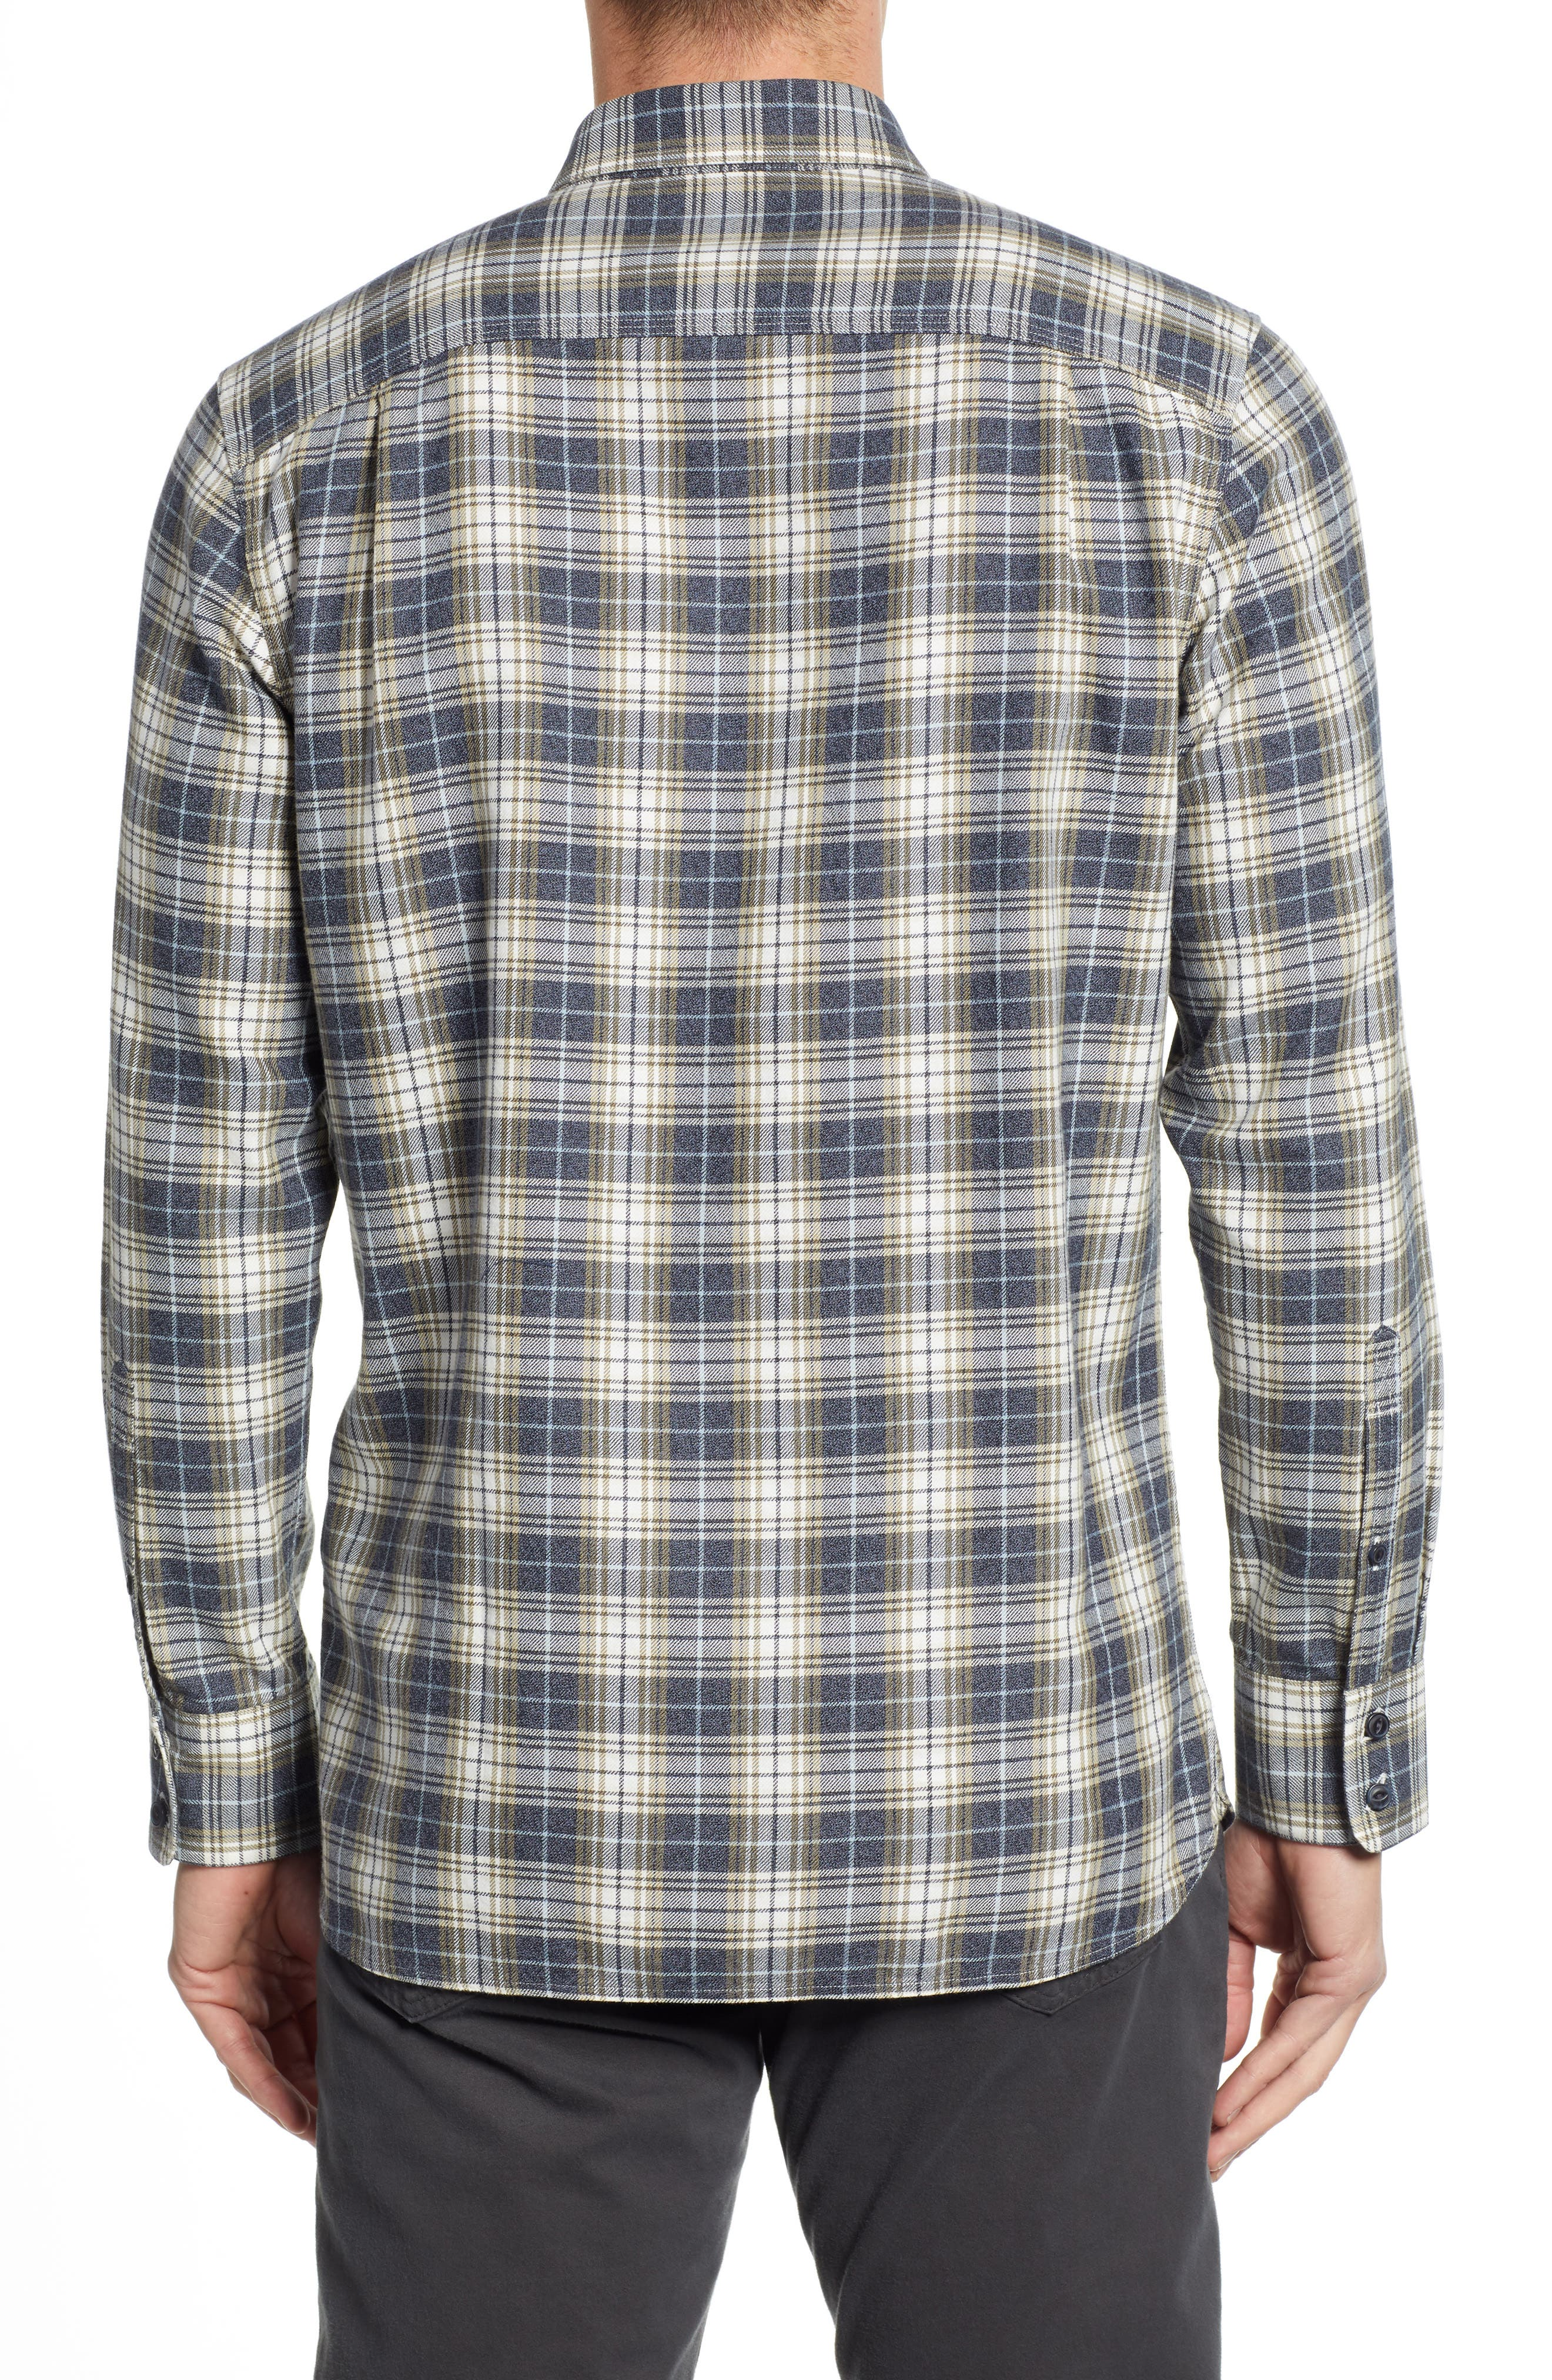 Trucker Regular Fit Plaid Flannel Shirt,                             Alternate thumbnail 2, color,                             IVORY EGRET TWILL PLAID